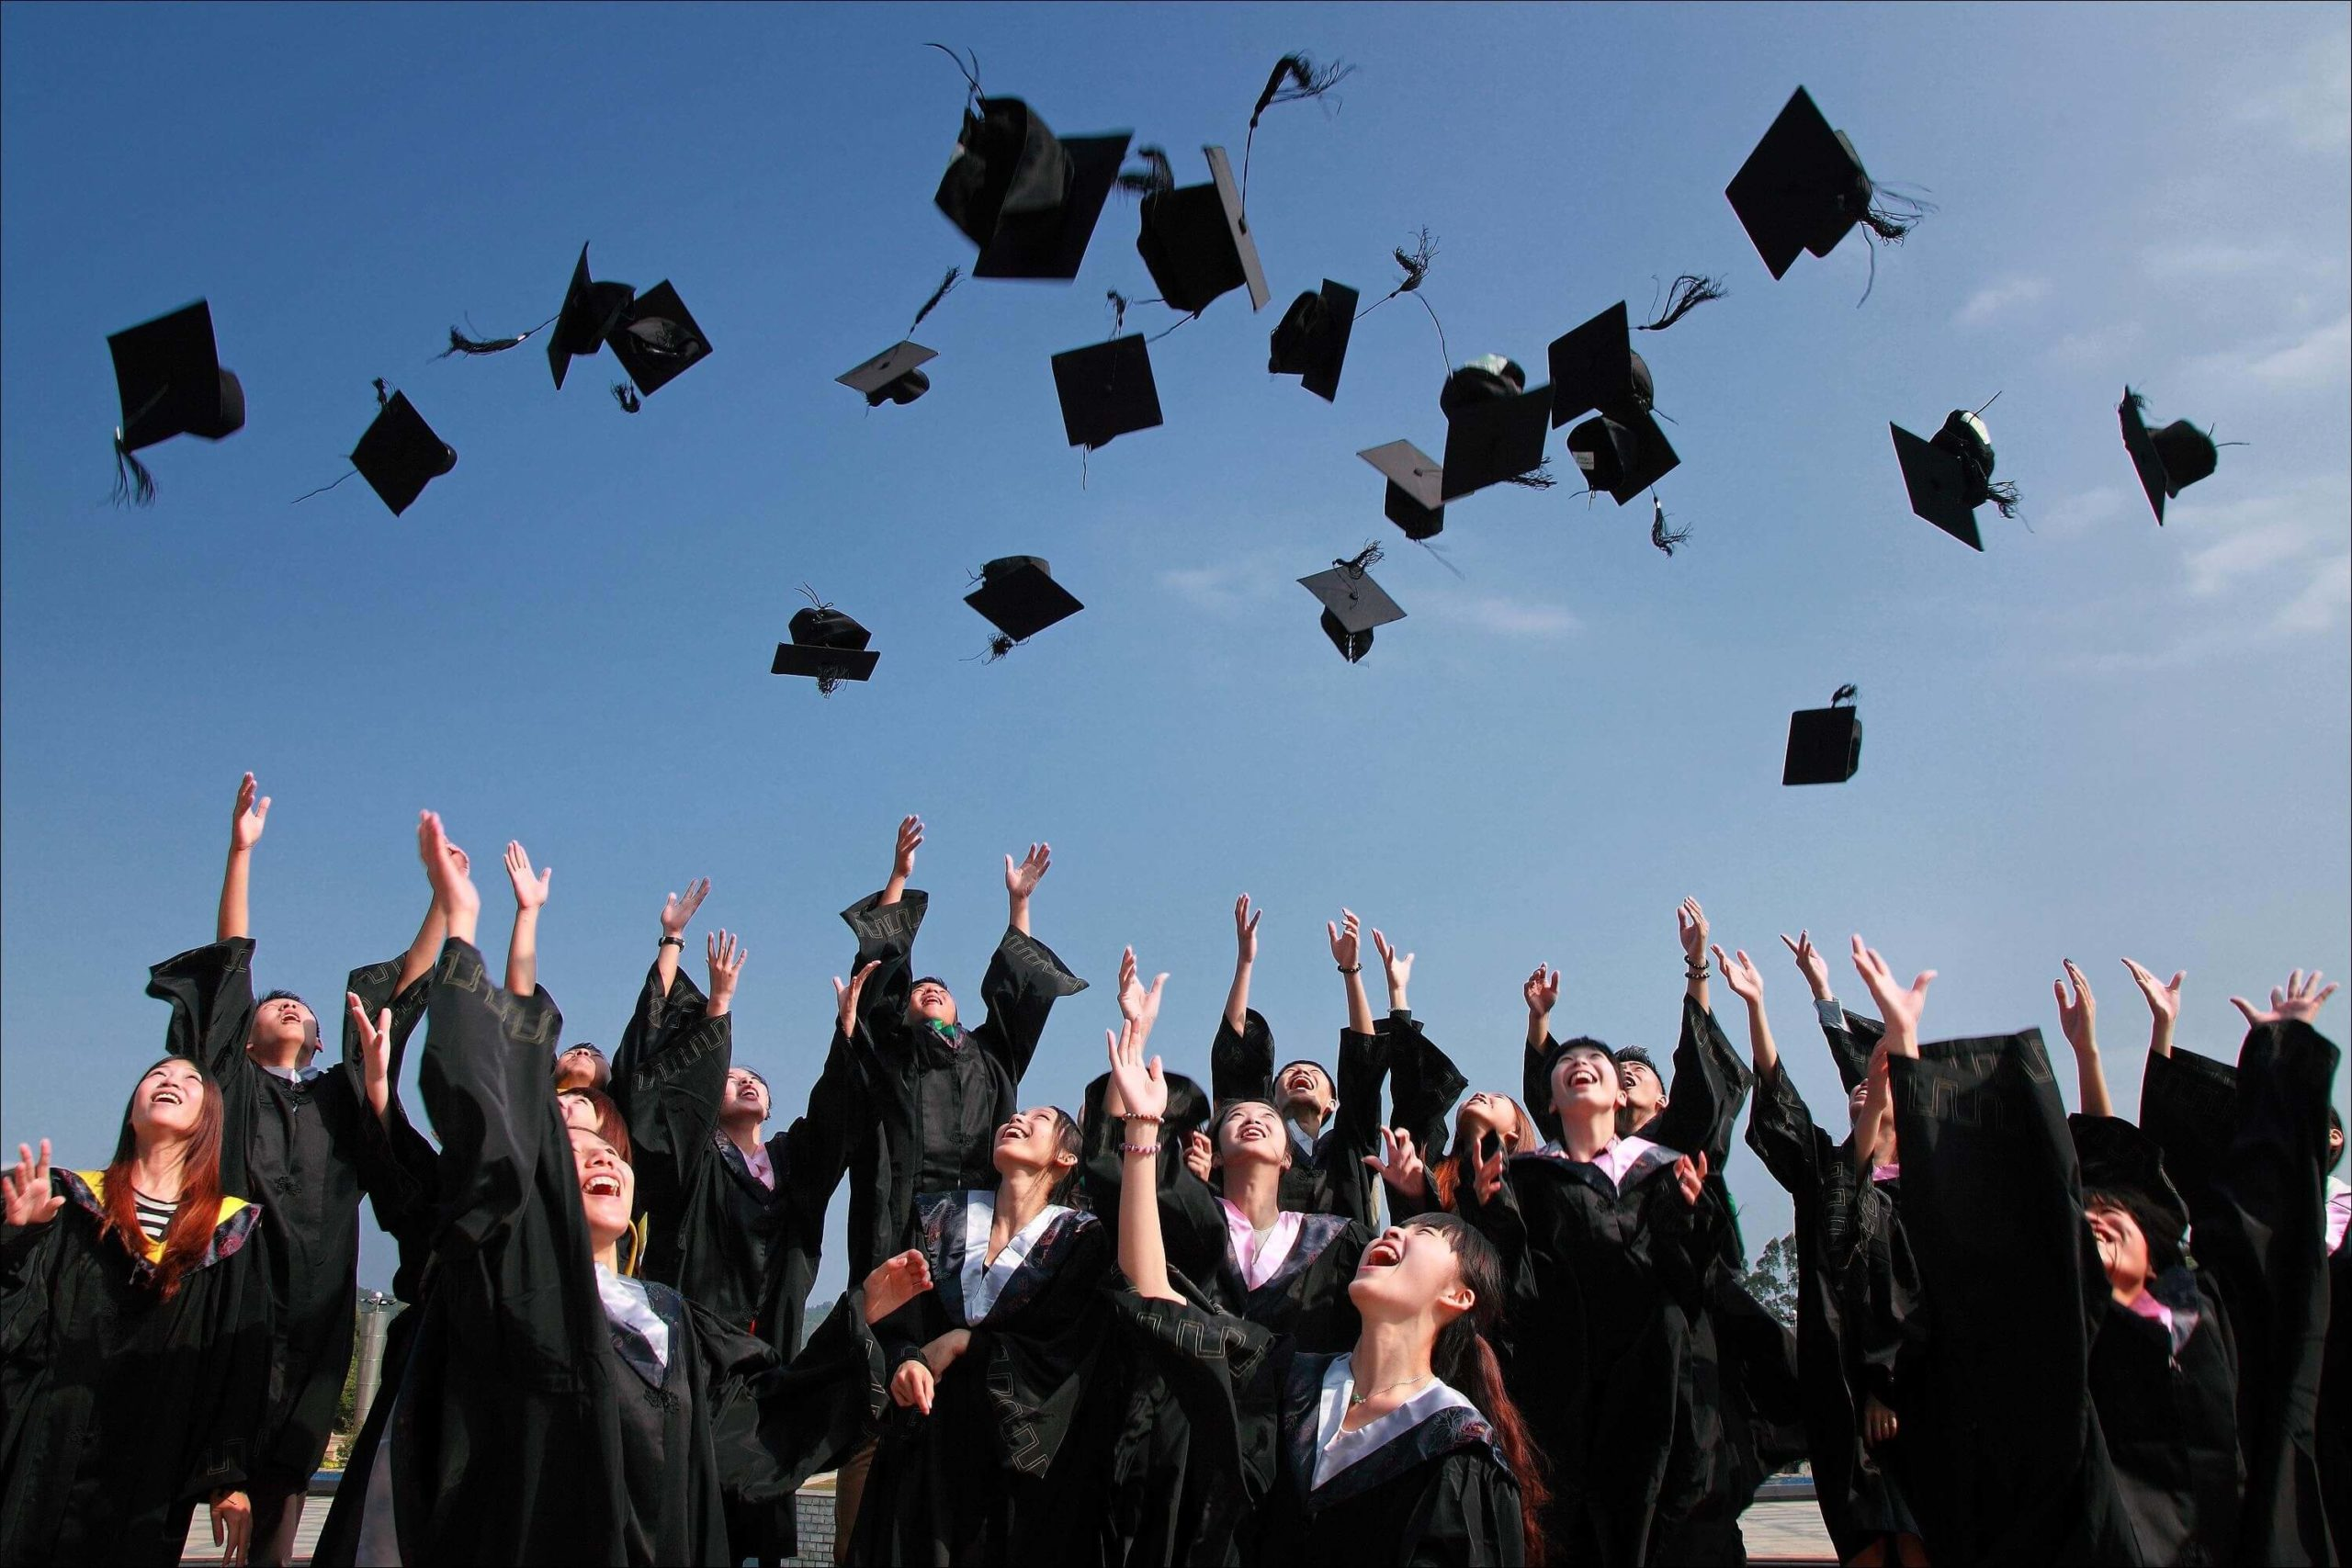 A group of graduates in black gowns throwing their mortarboard hats into the air while cheering.